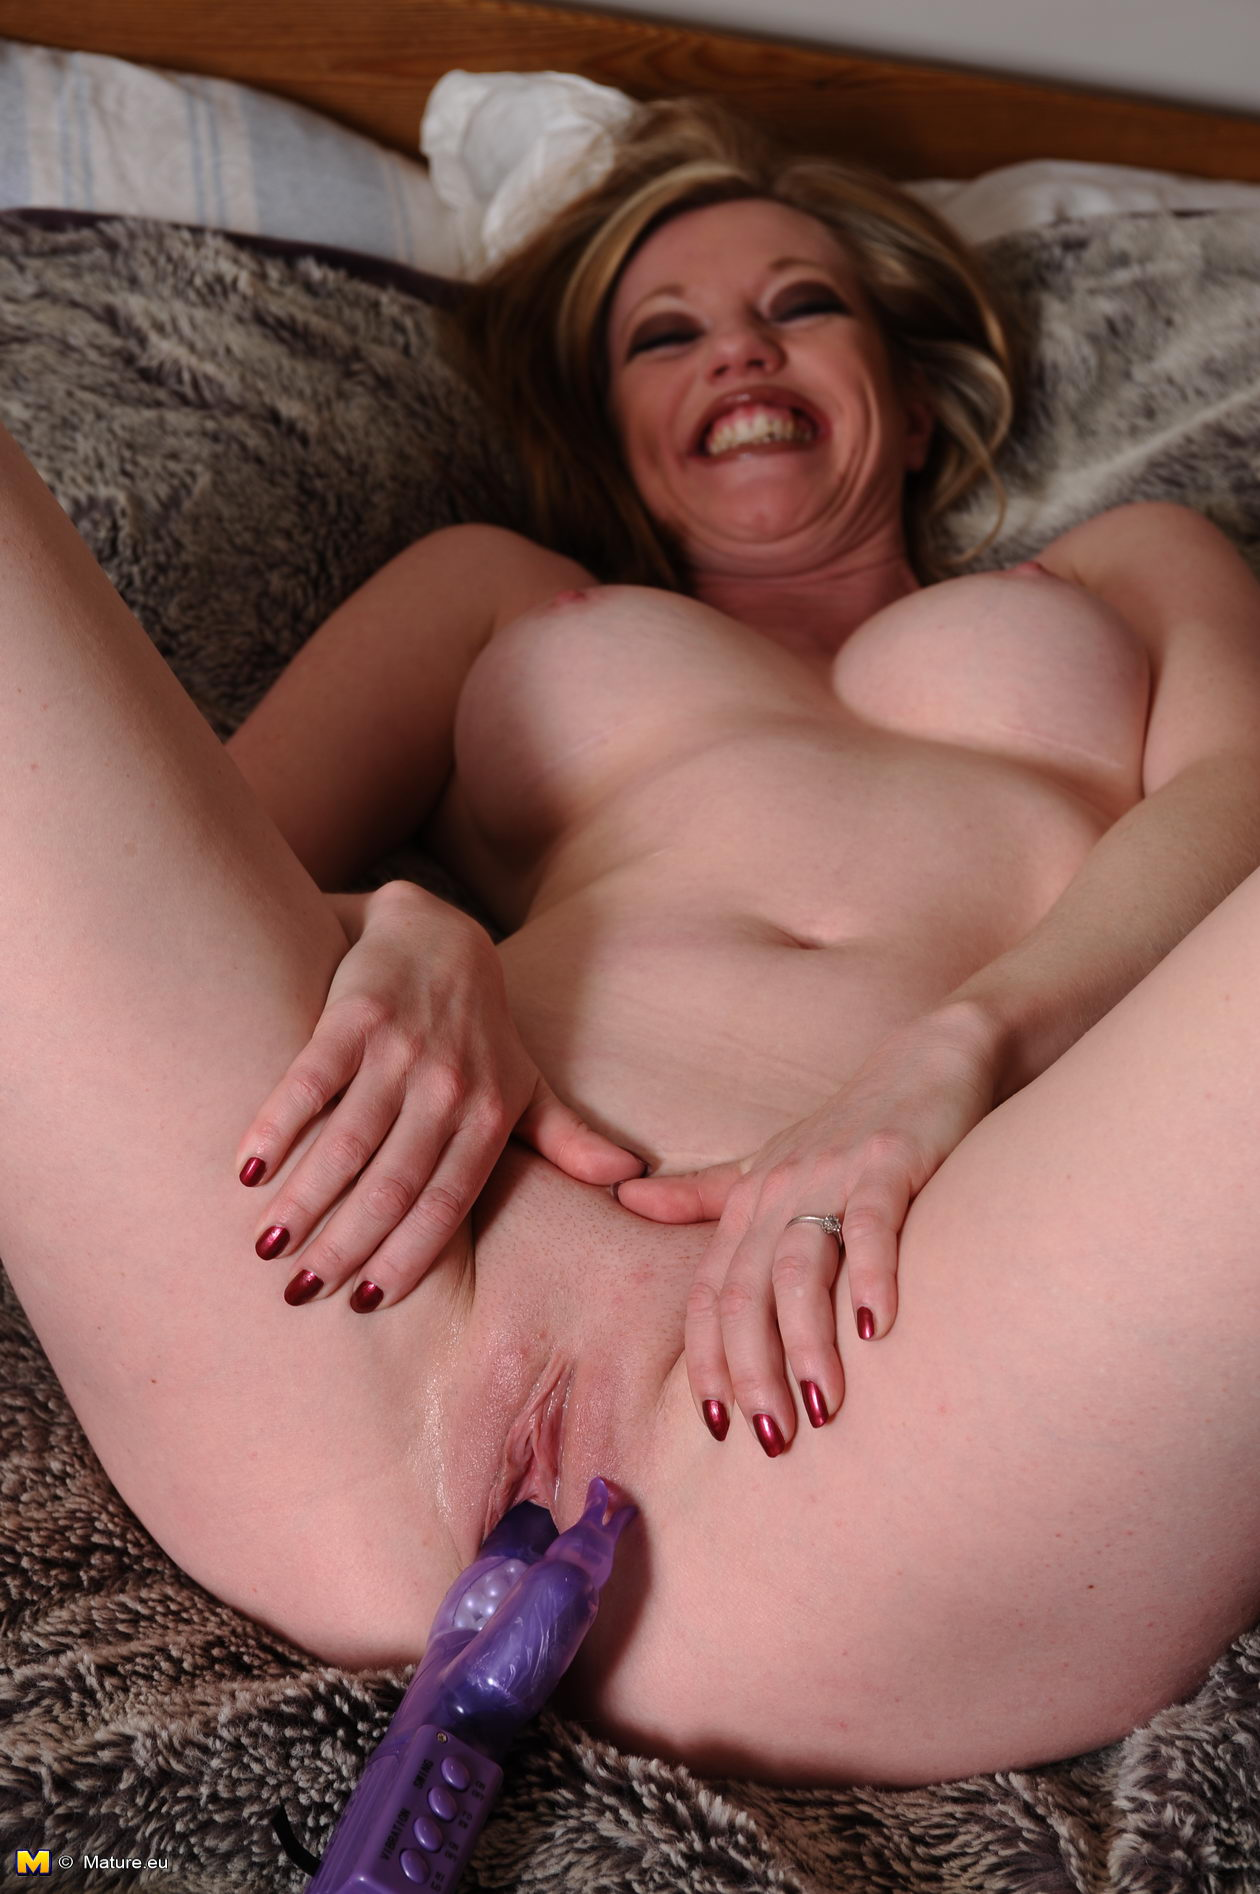 Milf playing with pussy